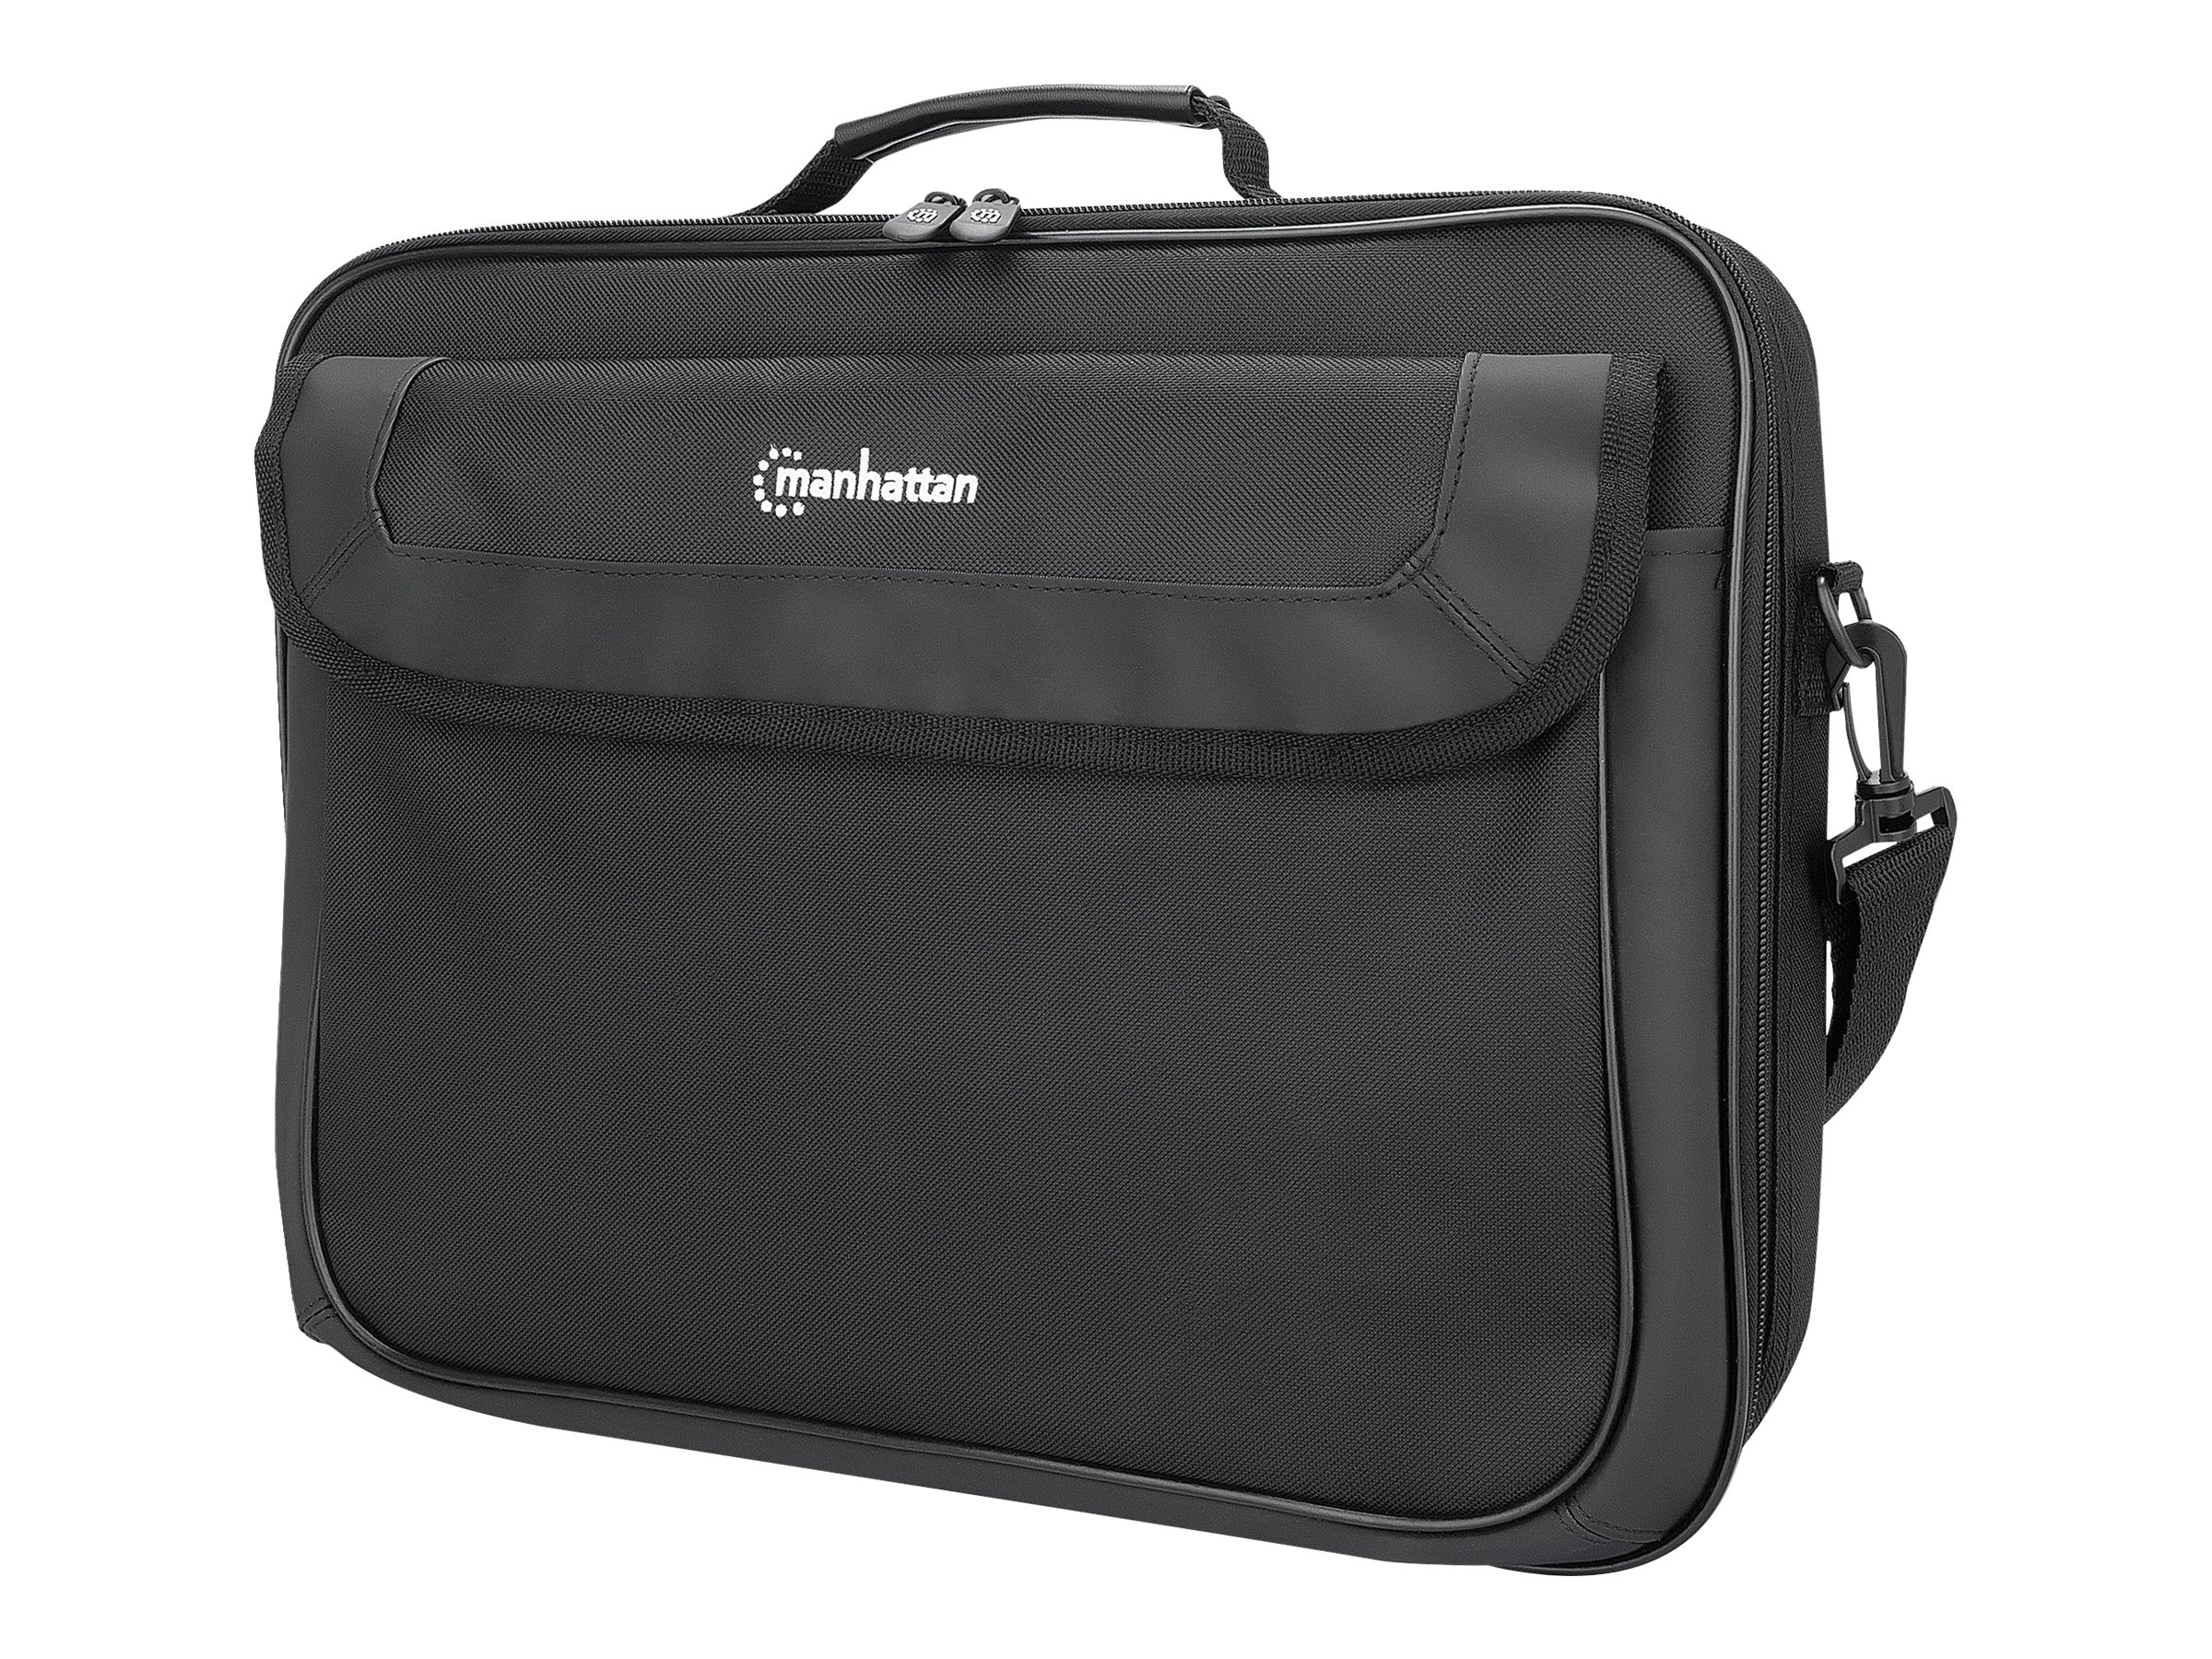 """IC Intracom Manhattan Cambridge Laptop Bag 15.6"""", Clamshell Design, Accessories Pocket, Document Compartment on Back, Shoulder Strap (removable)"""